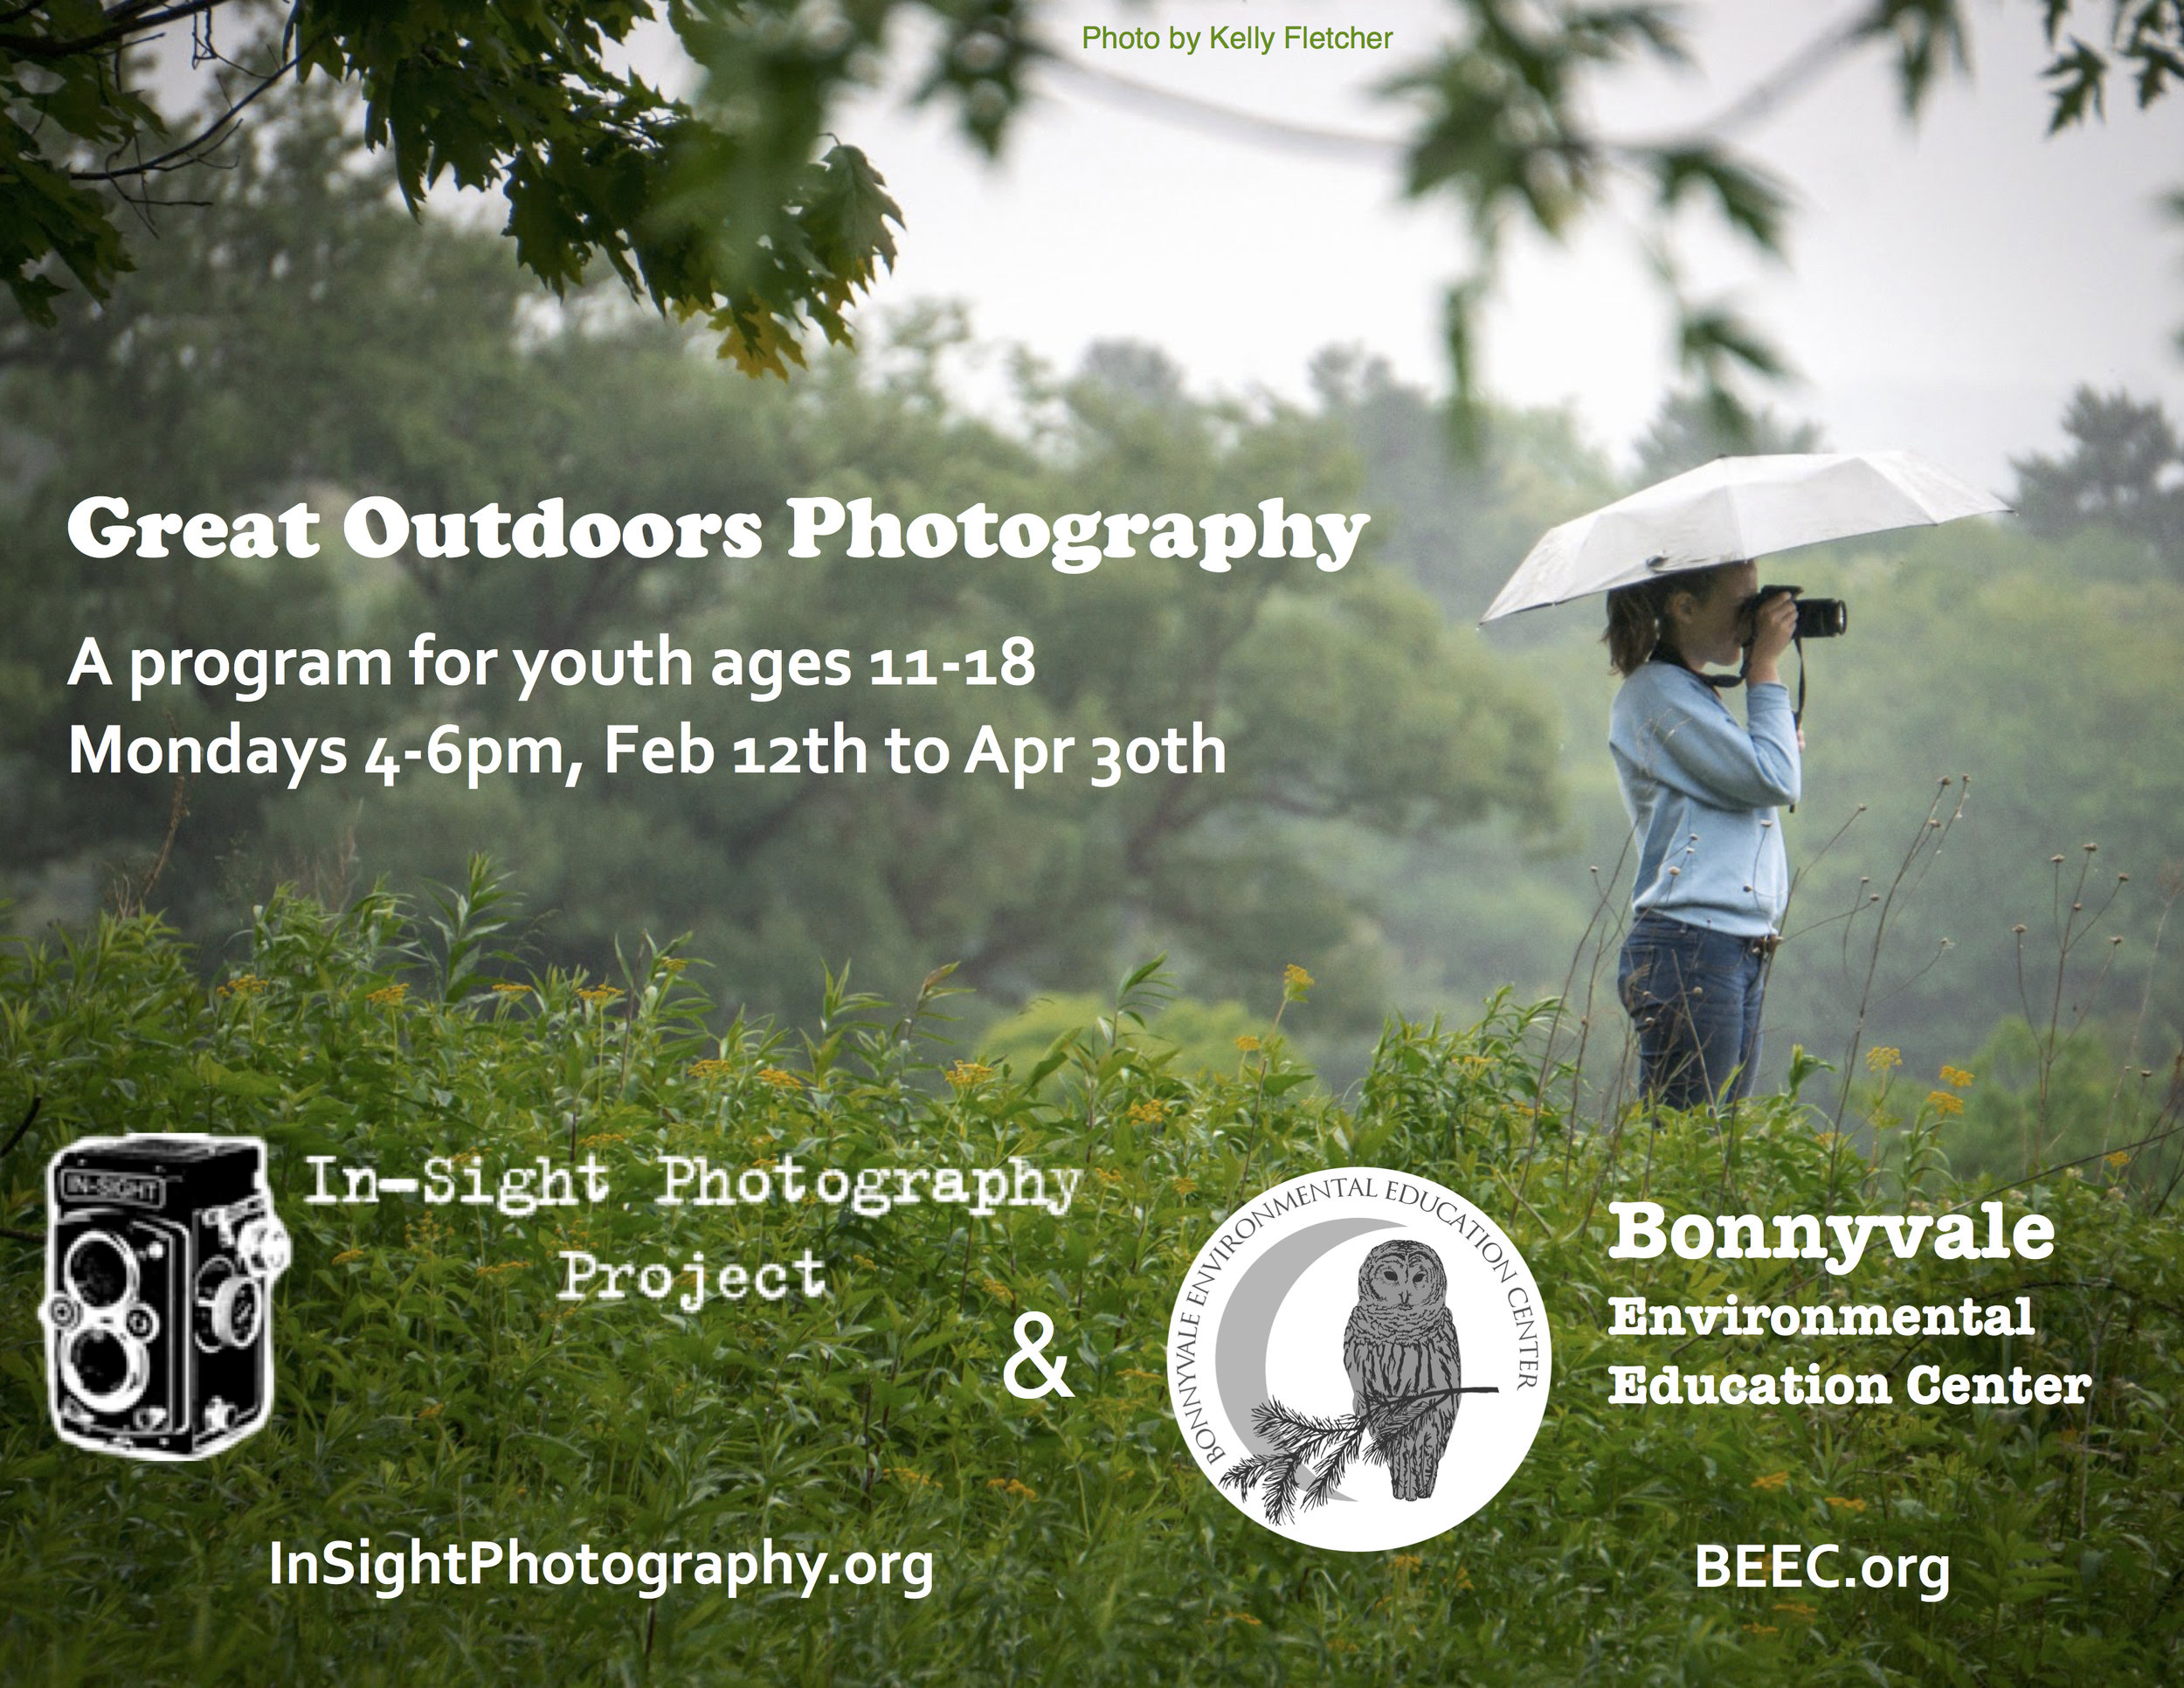 Digital Photo 1: The Great Outdoors!  Mondays 4-6pm Instructors: Kelly Fletcher and Kristina Weeks